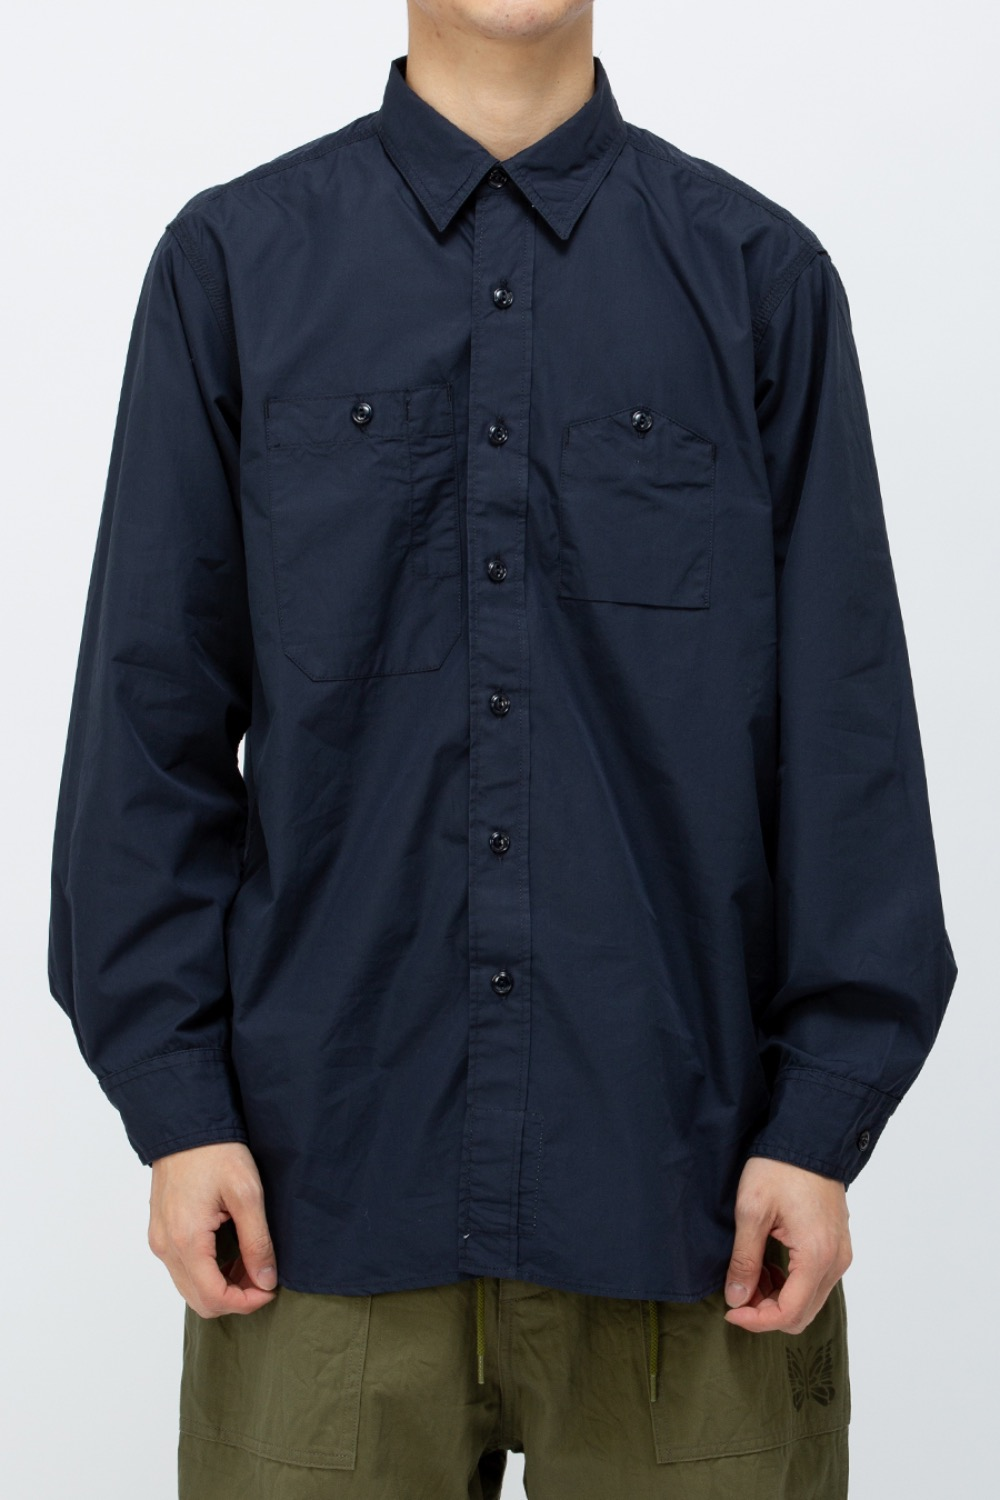 WORK SHIRT 100's 2PLY BROADCLOTH DARK NAVY